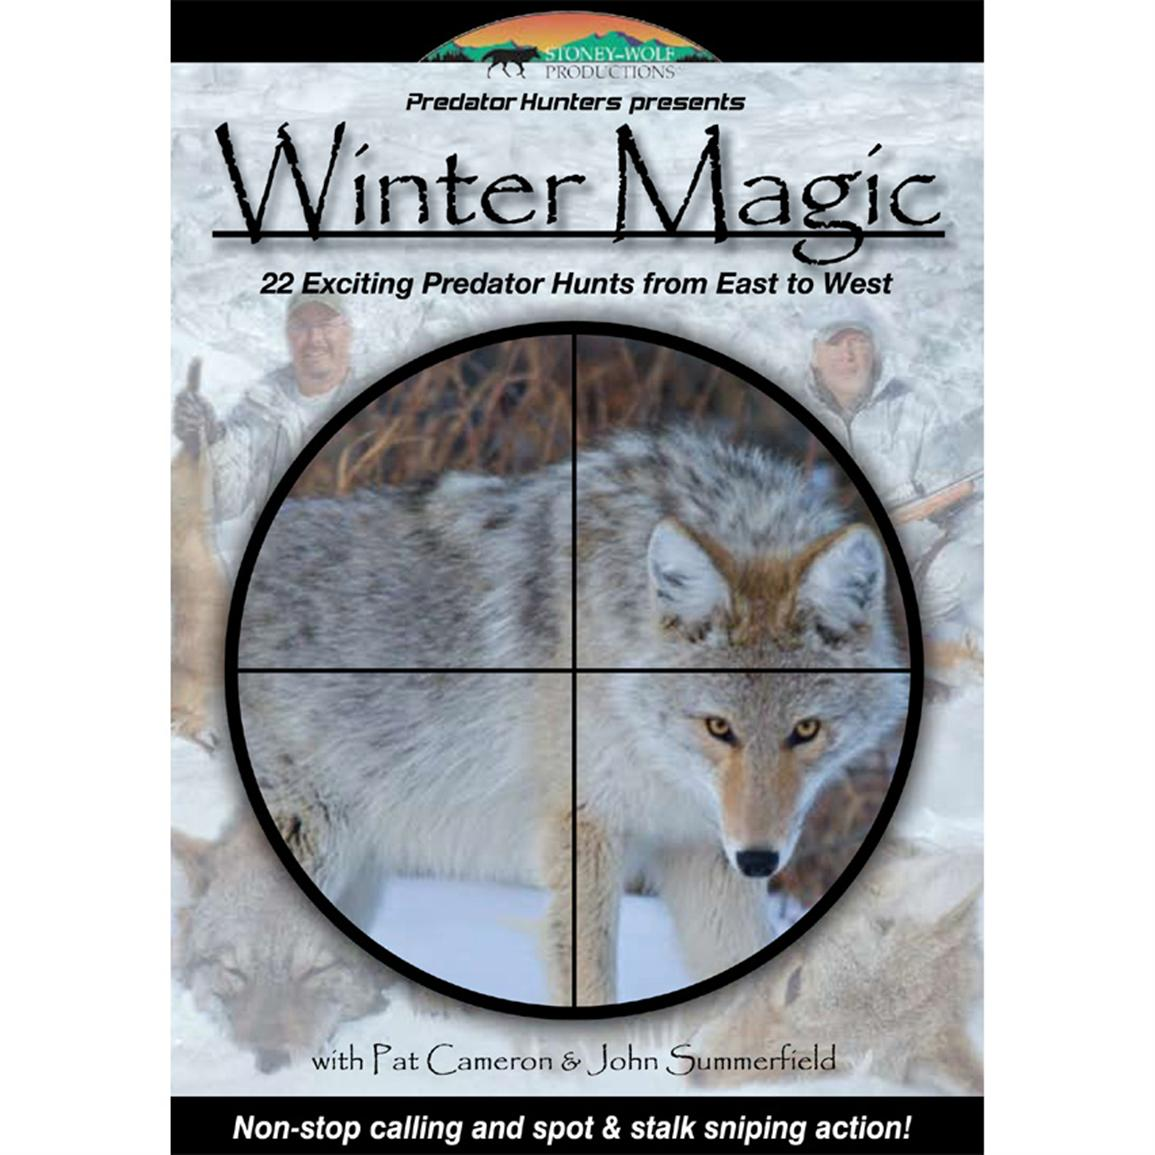 Winter Magic Predator Hunting DVD from Stoney Wolf Productions®